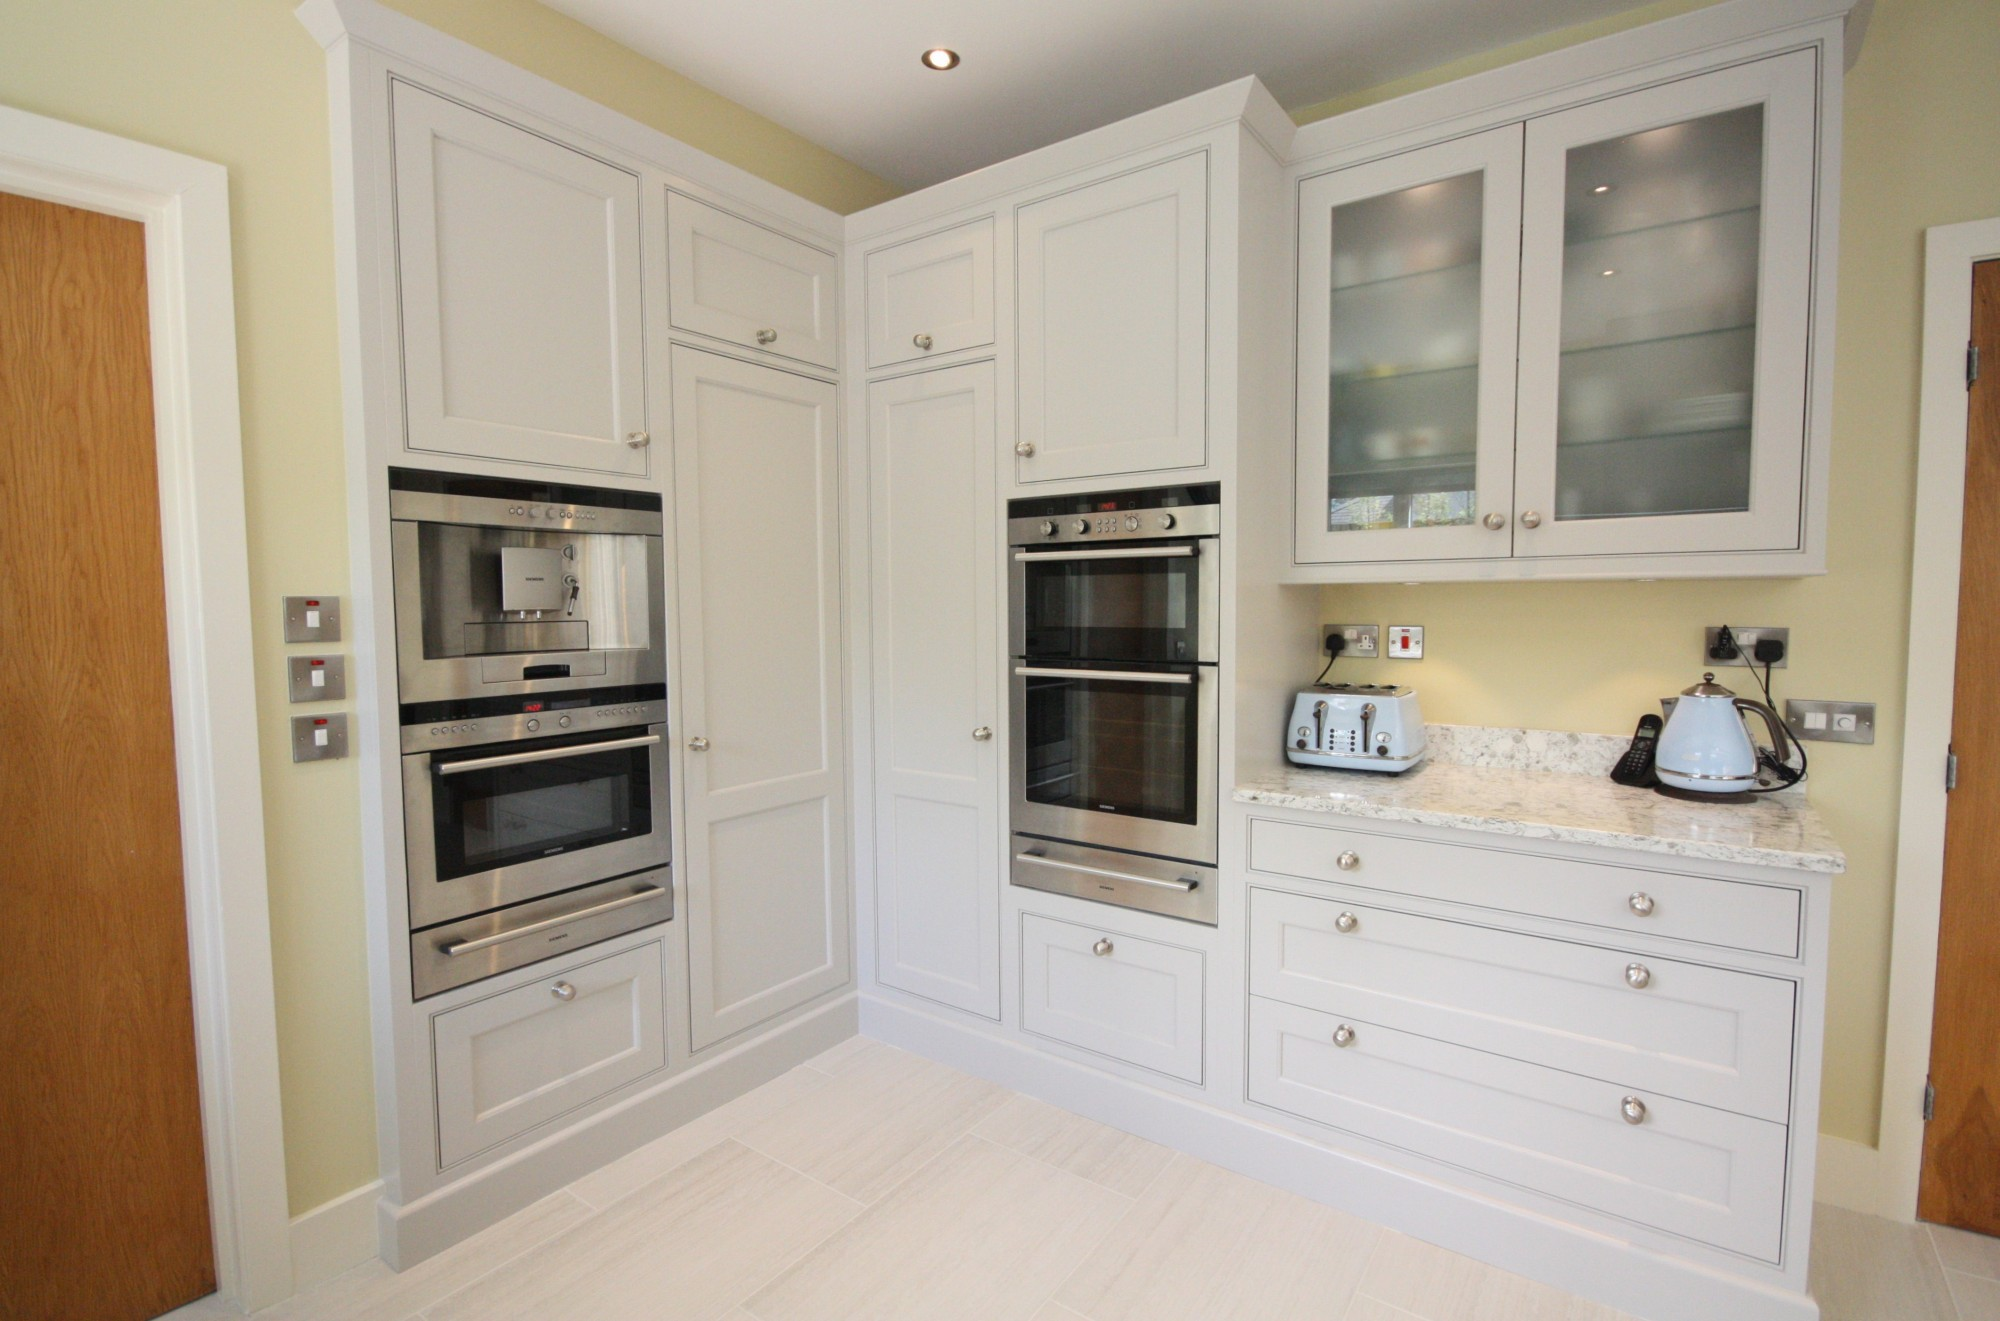 Bespoke Kitchen Design Painting enigma design » dm inframe hand painted bespoke kitchen enigma